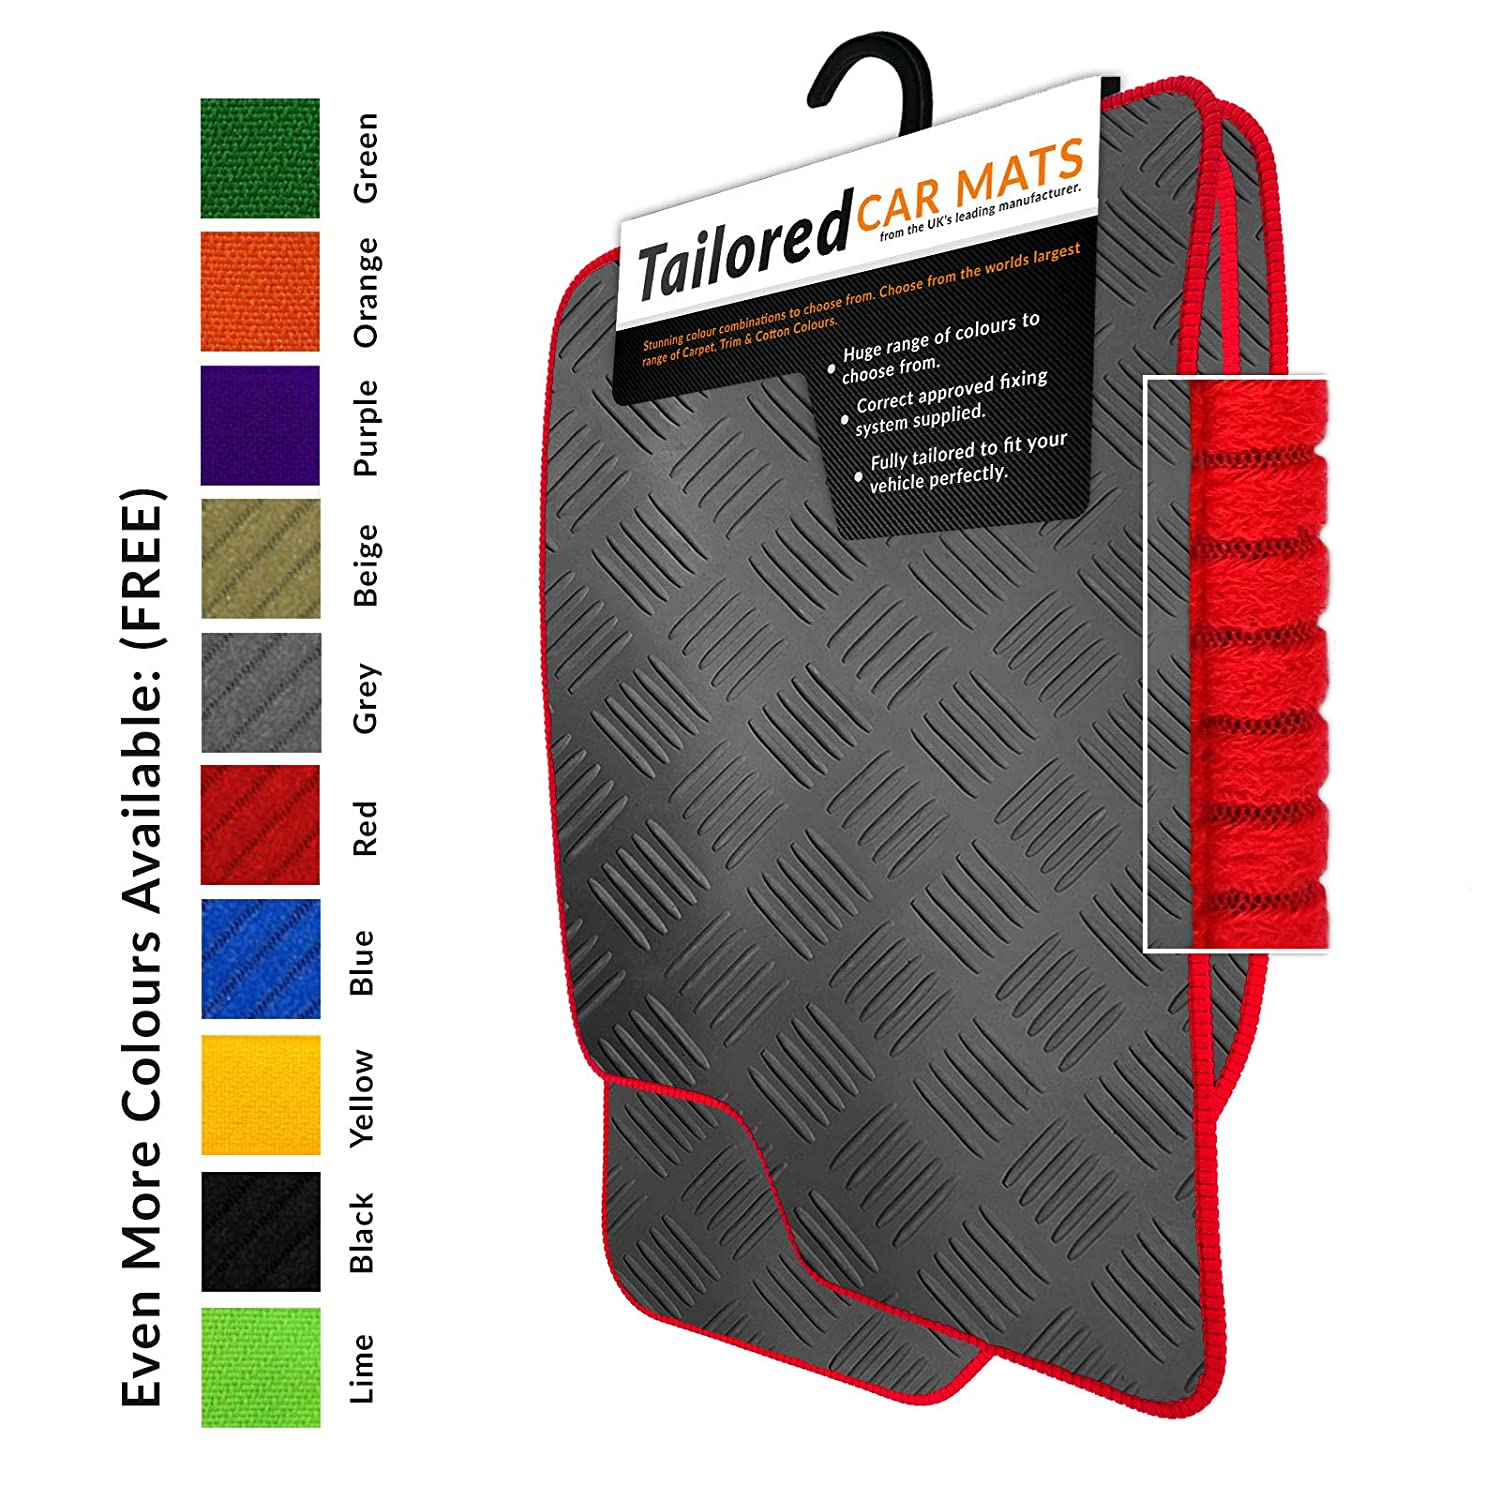 Tailored Rubber Car Mats Unique Car Mats